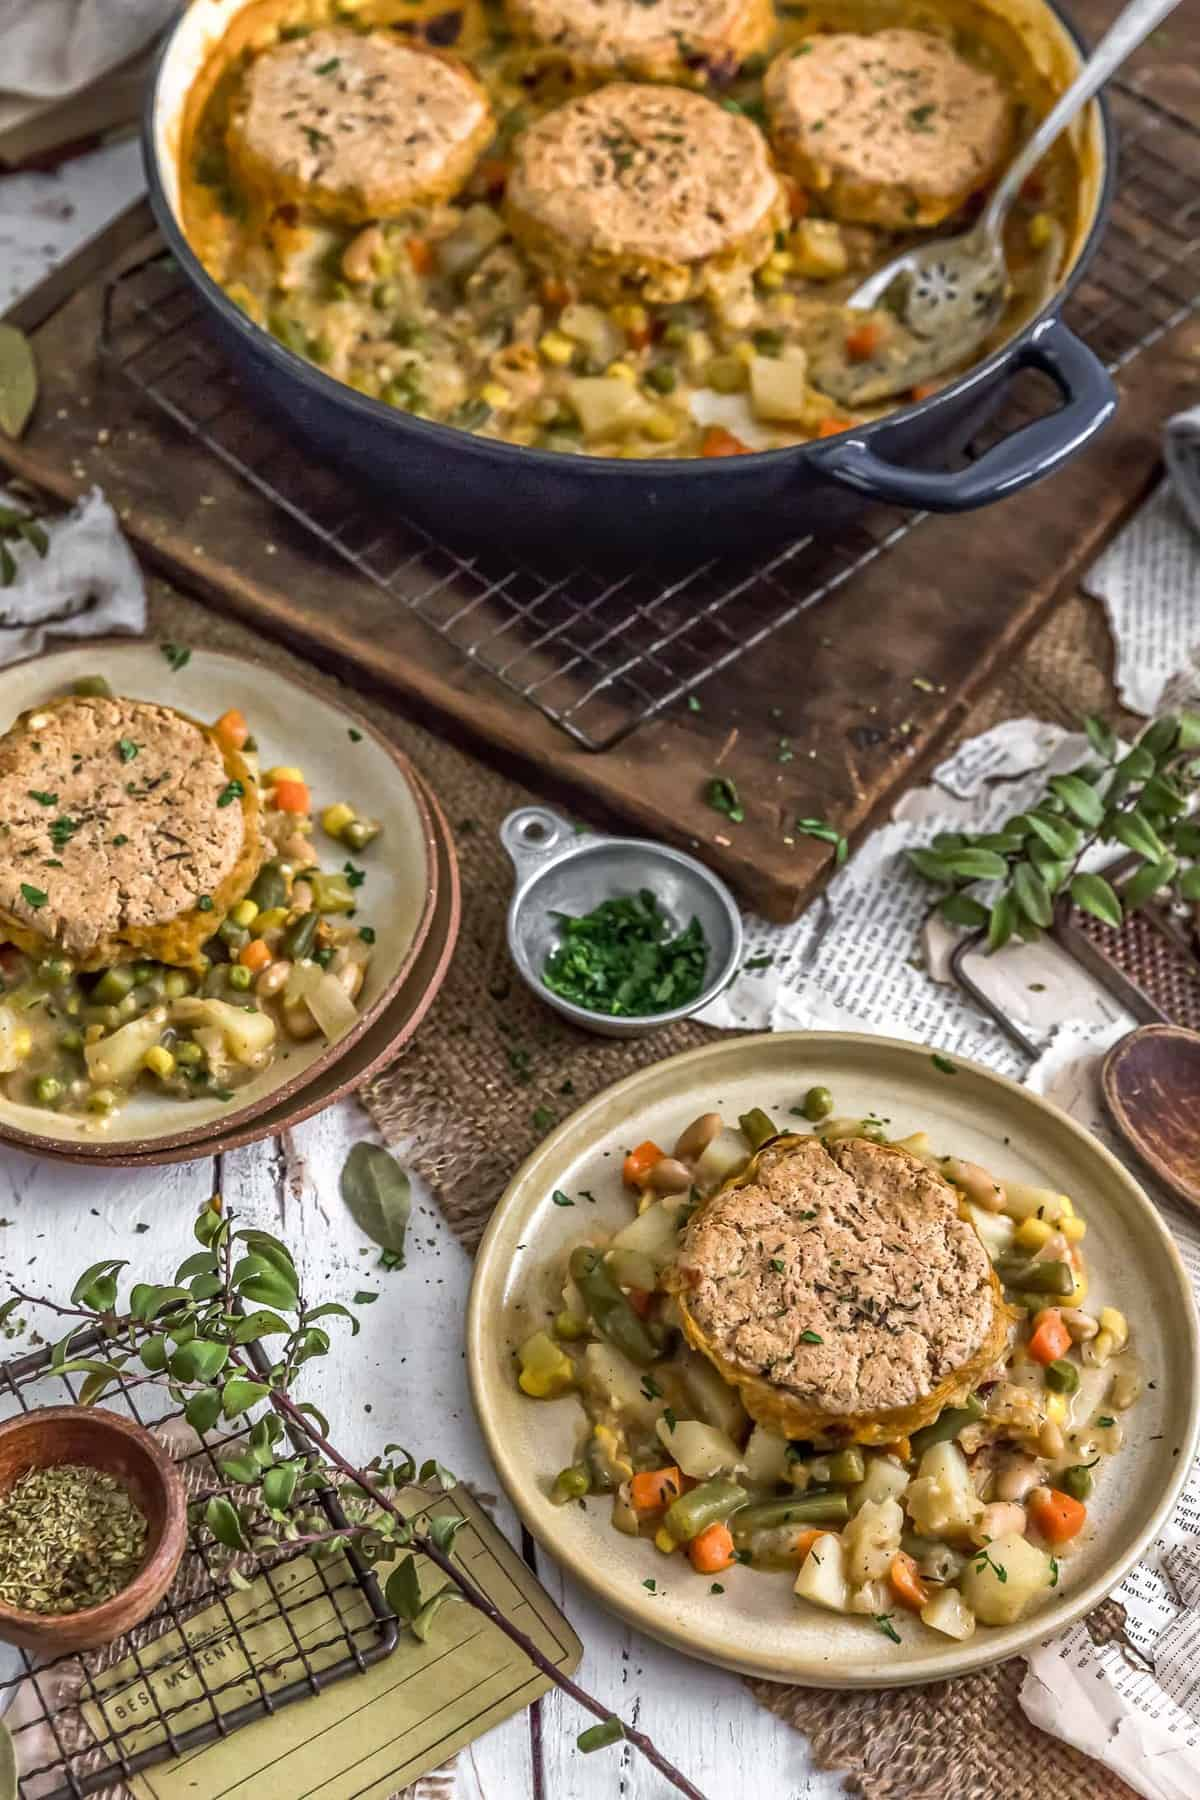 Plates of Vegan Biscuit Pot Pie